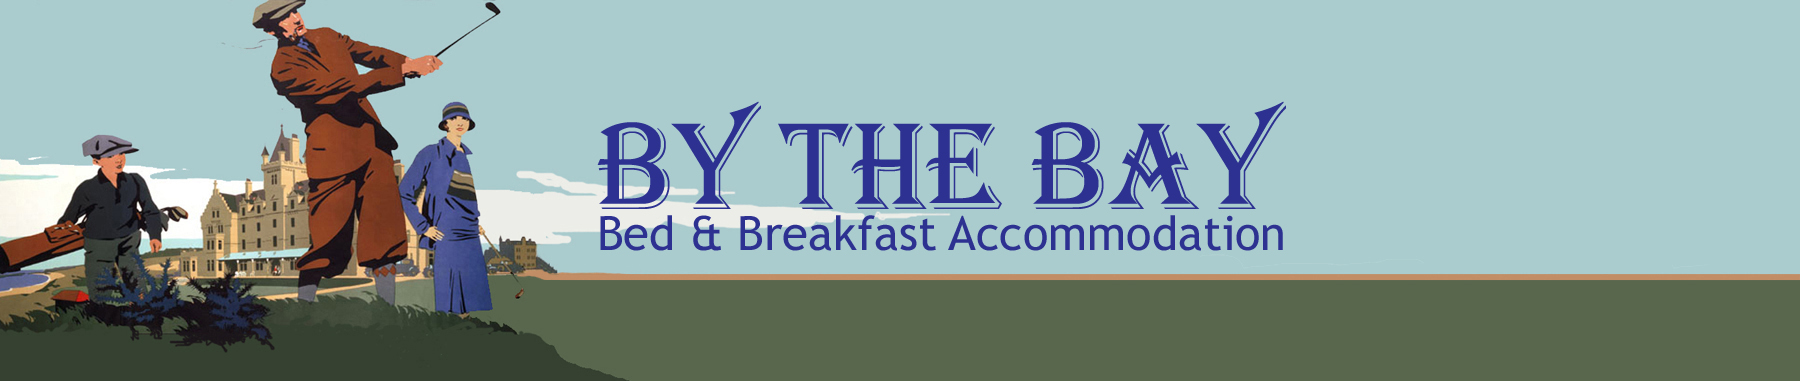 By The Bay Bed & Breakfast banner # 1